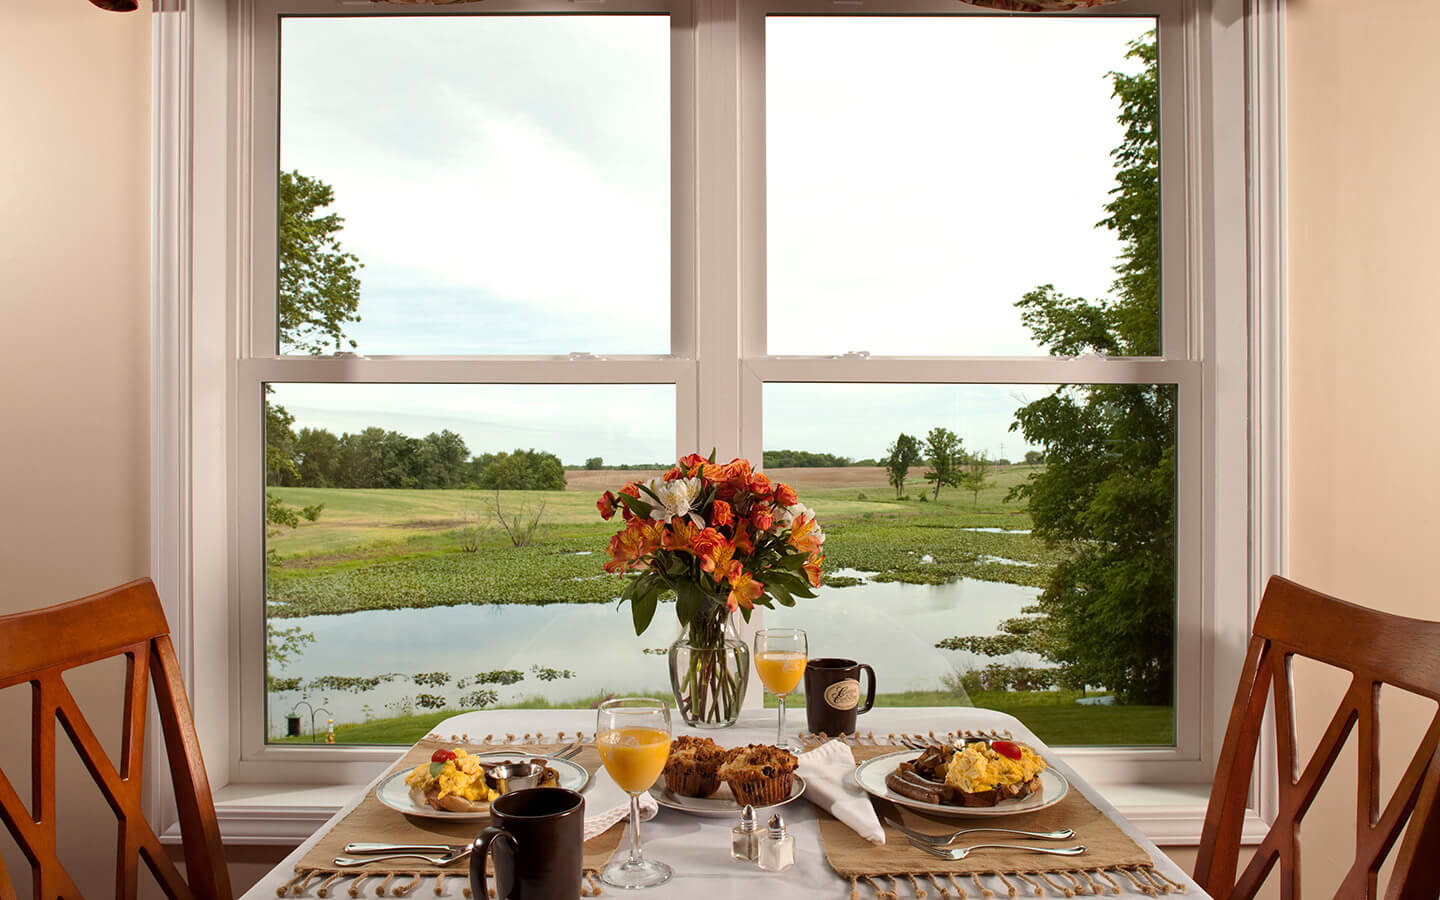 breakfast on a table by a window with a view of the water on a sunny day in Michigan